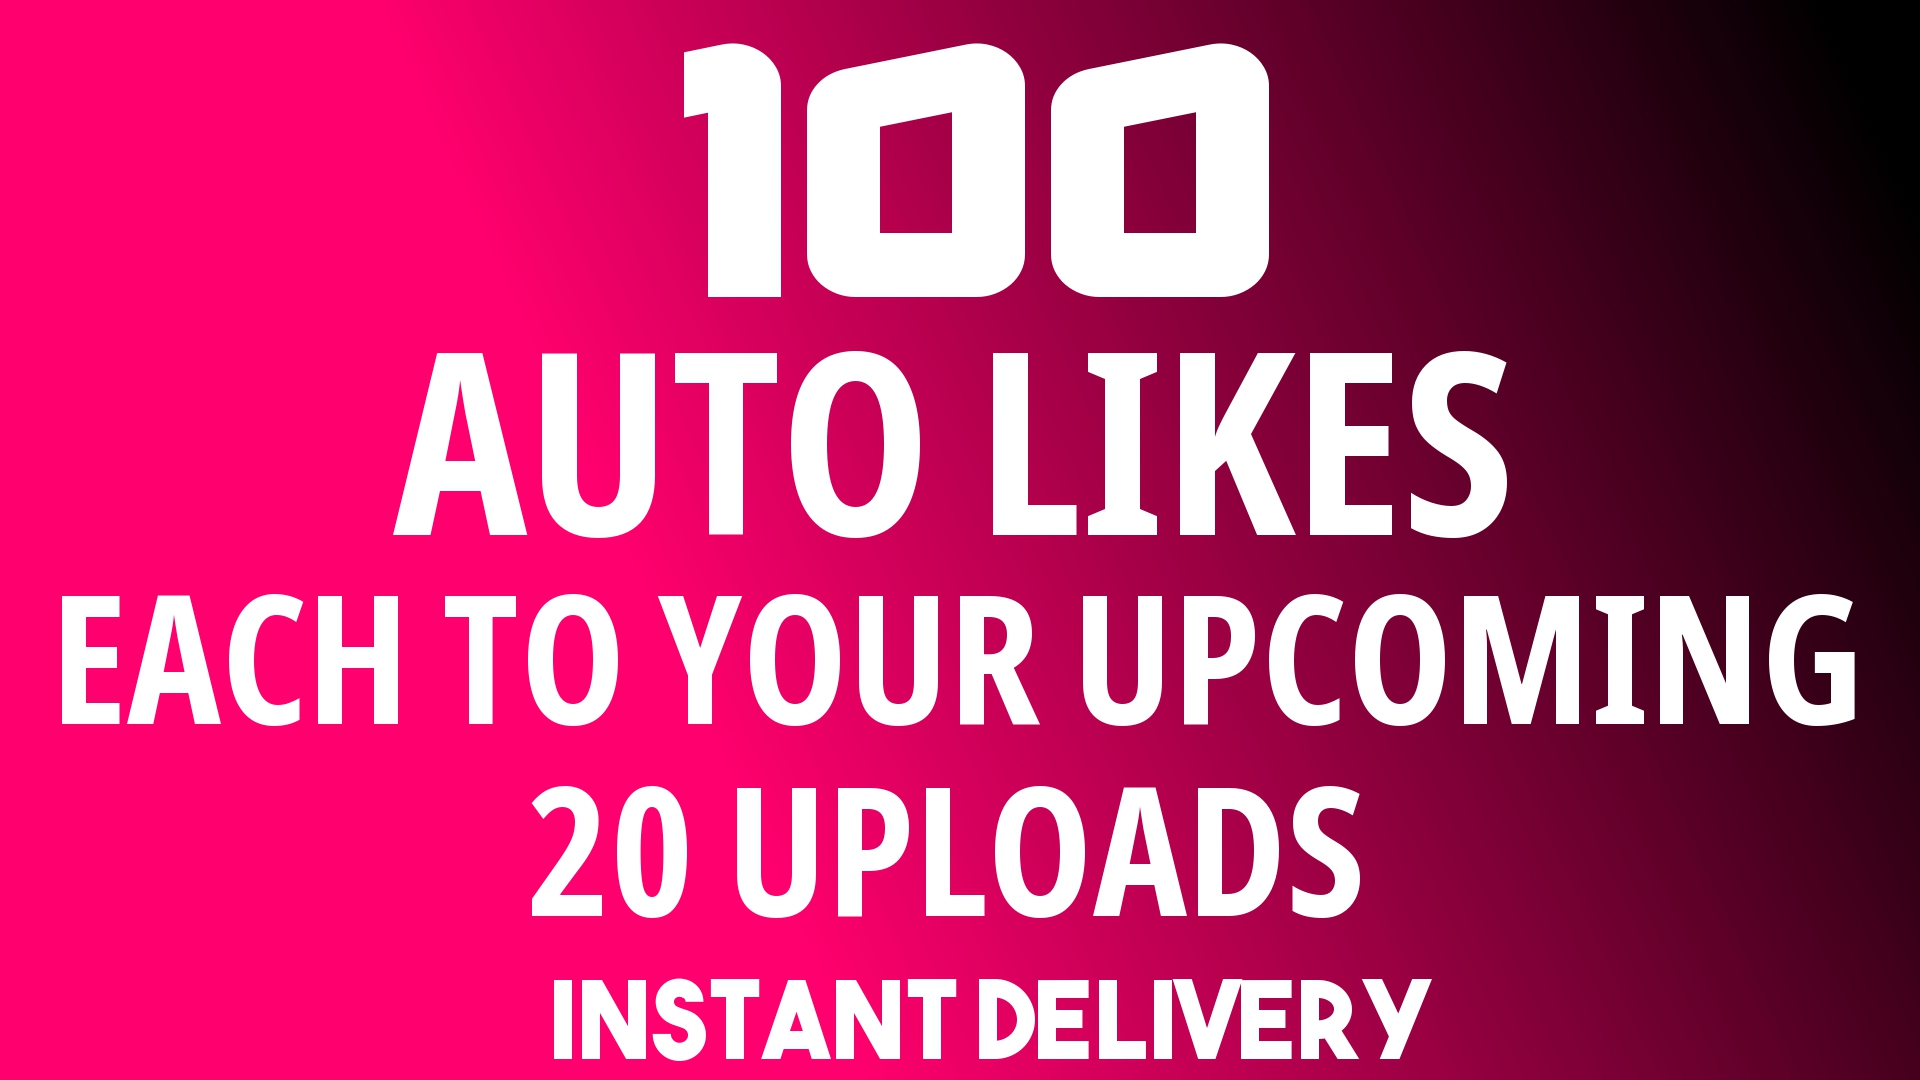 Instant Add Automatically 100+ Likes Each 20 Upcoming...